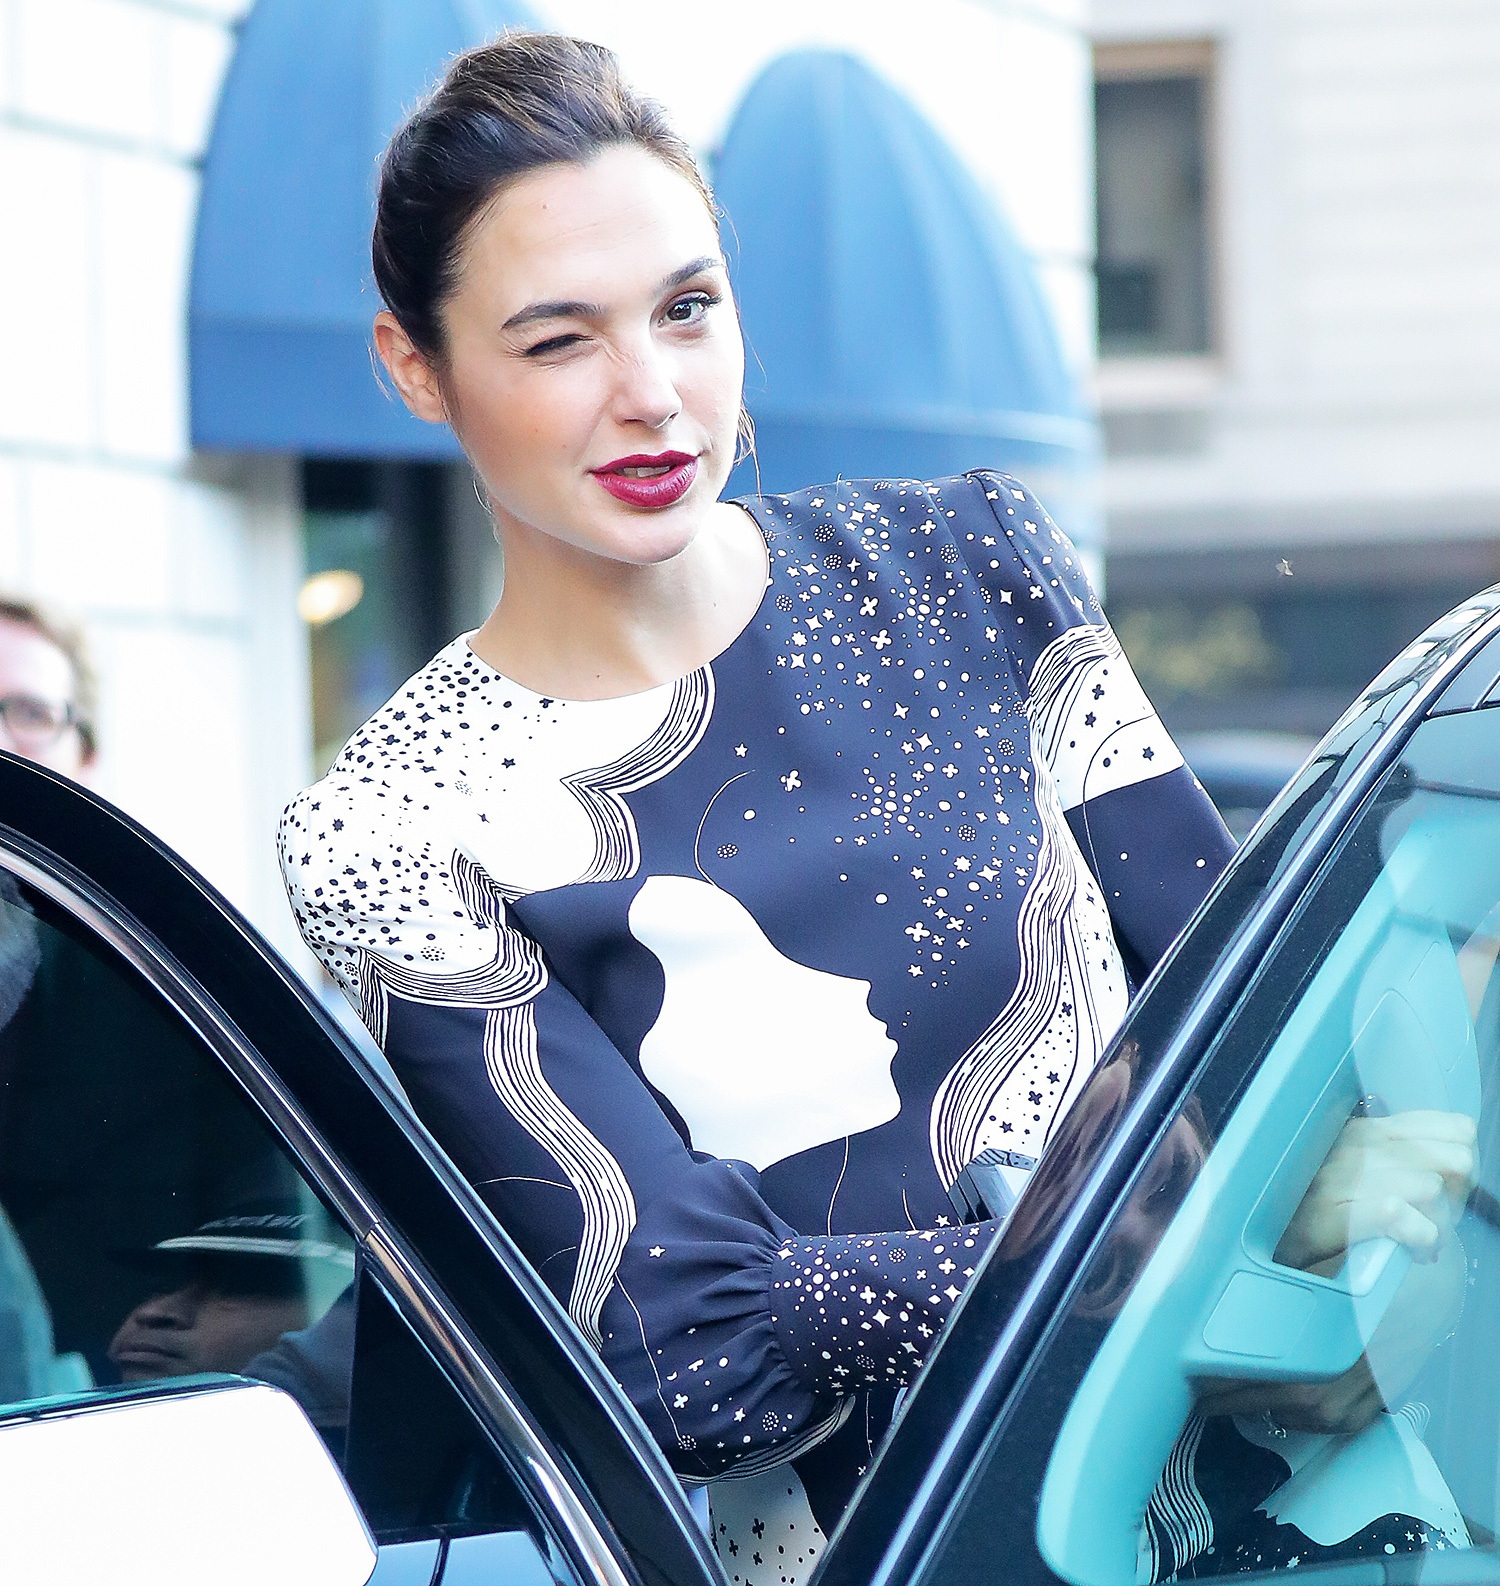 EXCLUSIVE: Gal Gadot winks her eye while heading out in New York City